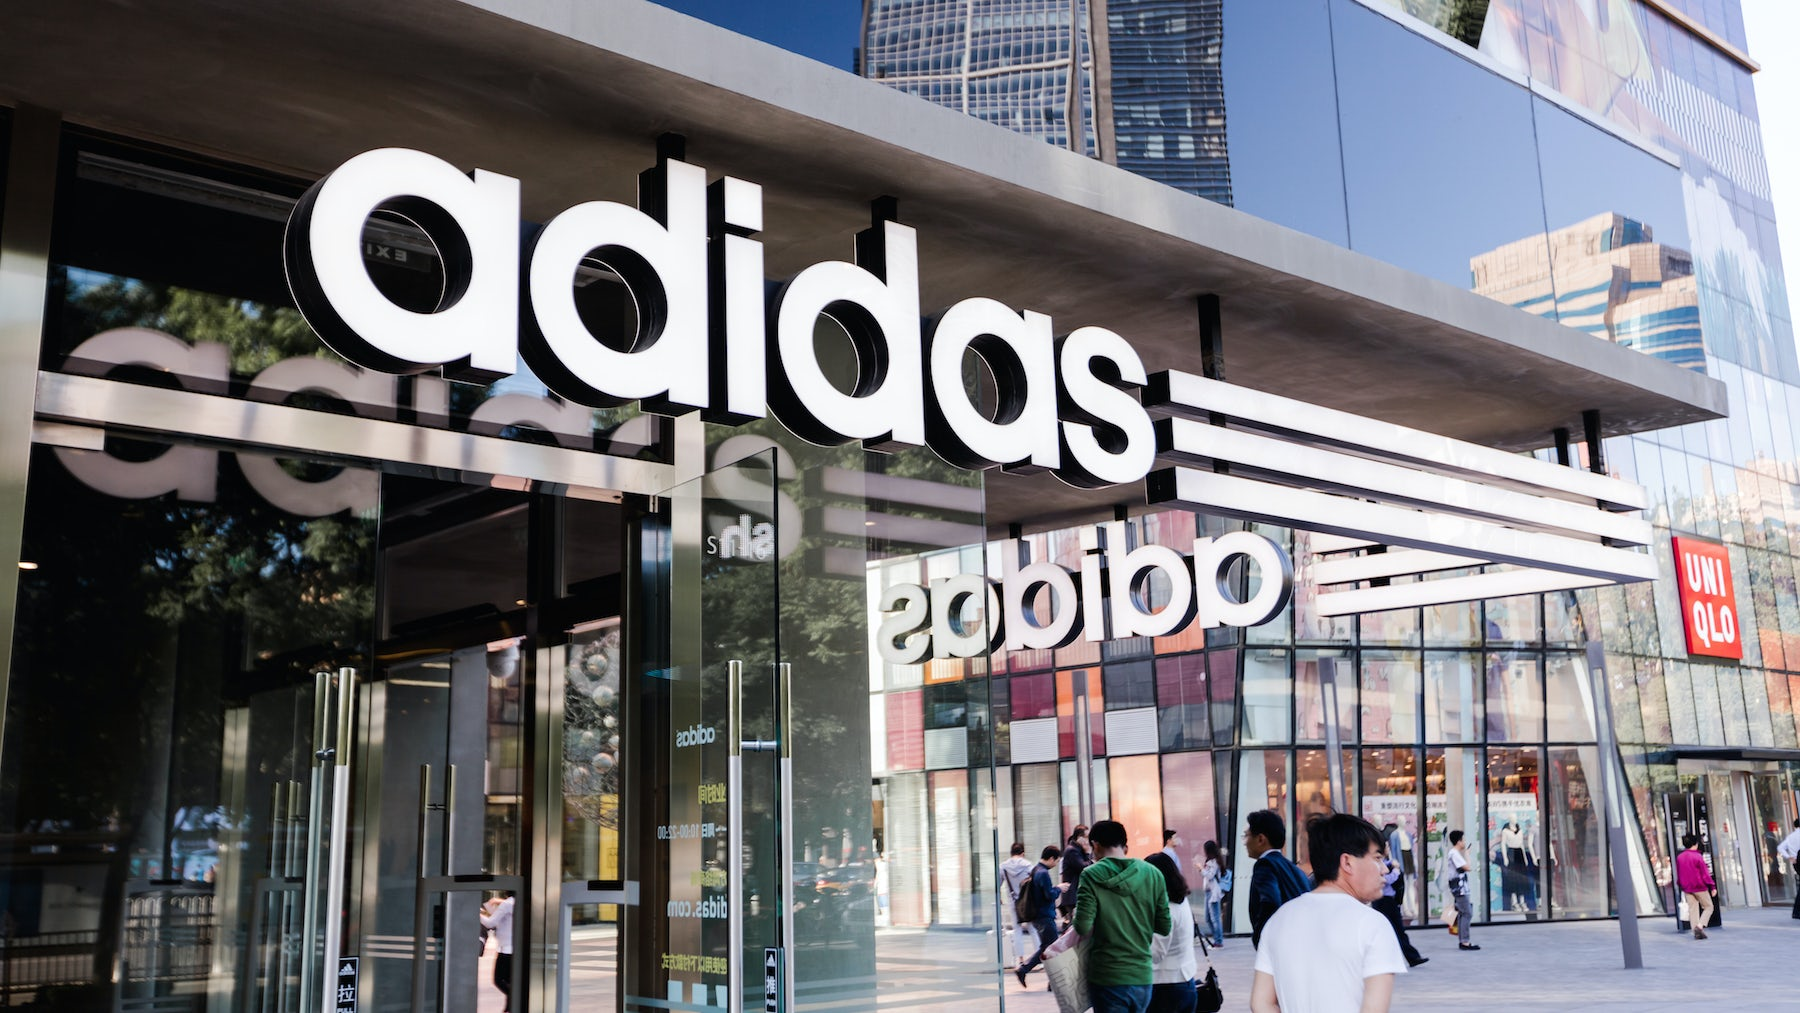 adidas outlet locations apparel group nike outlet store apparel